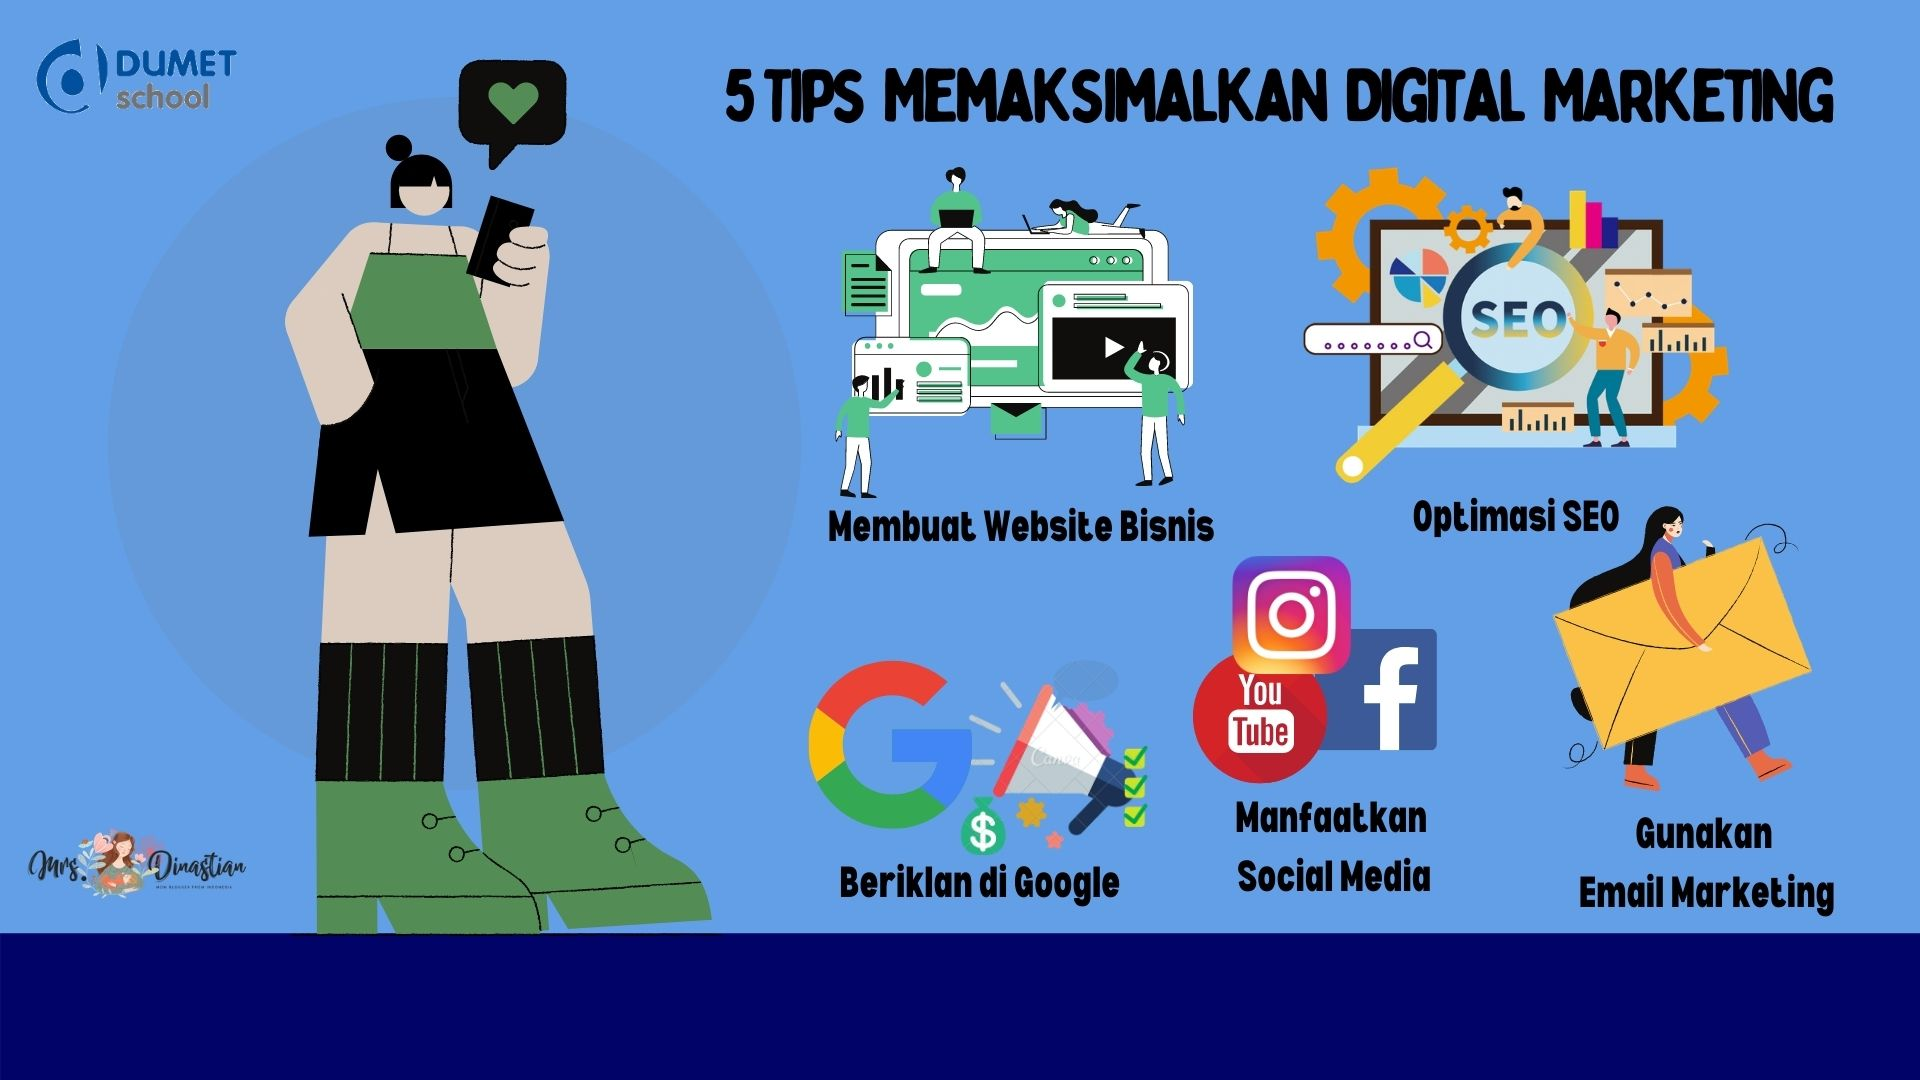 Tips Memaksimalkan Digital Marketing